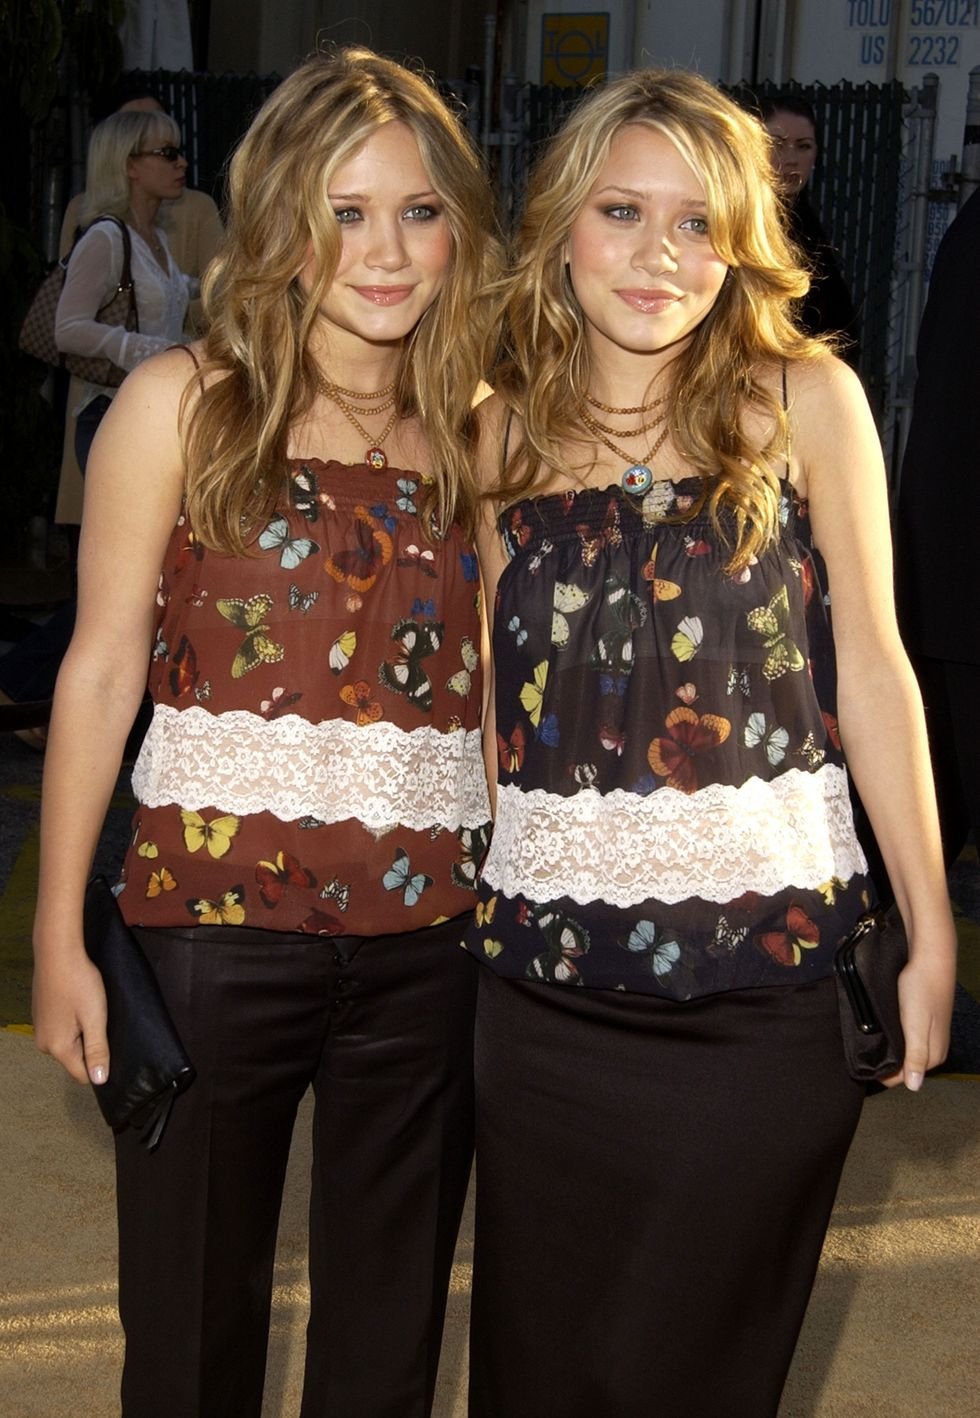 July 22, 2002 For the premiere of Austin Powers in Goldmember, the twins wore matching butterfly printed camisoles and black pants.